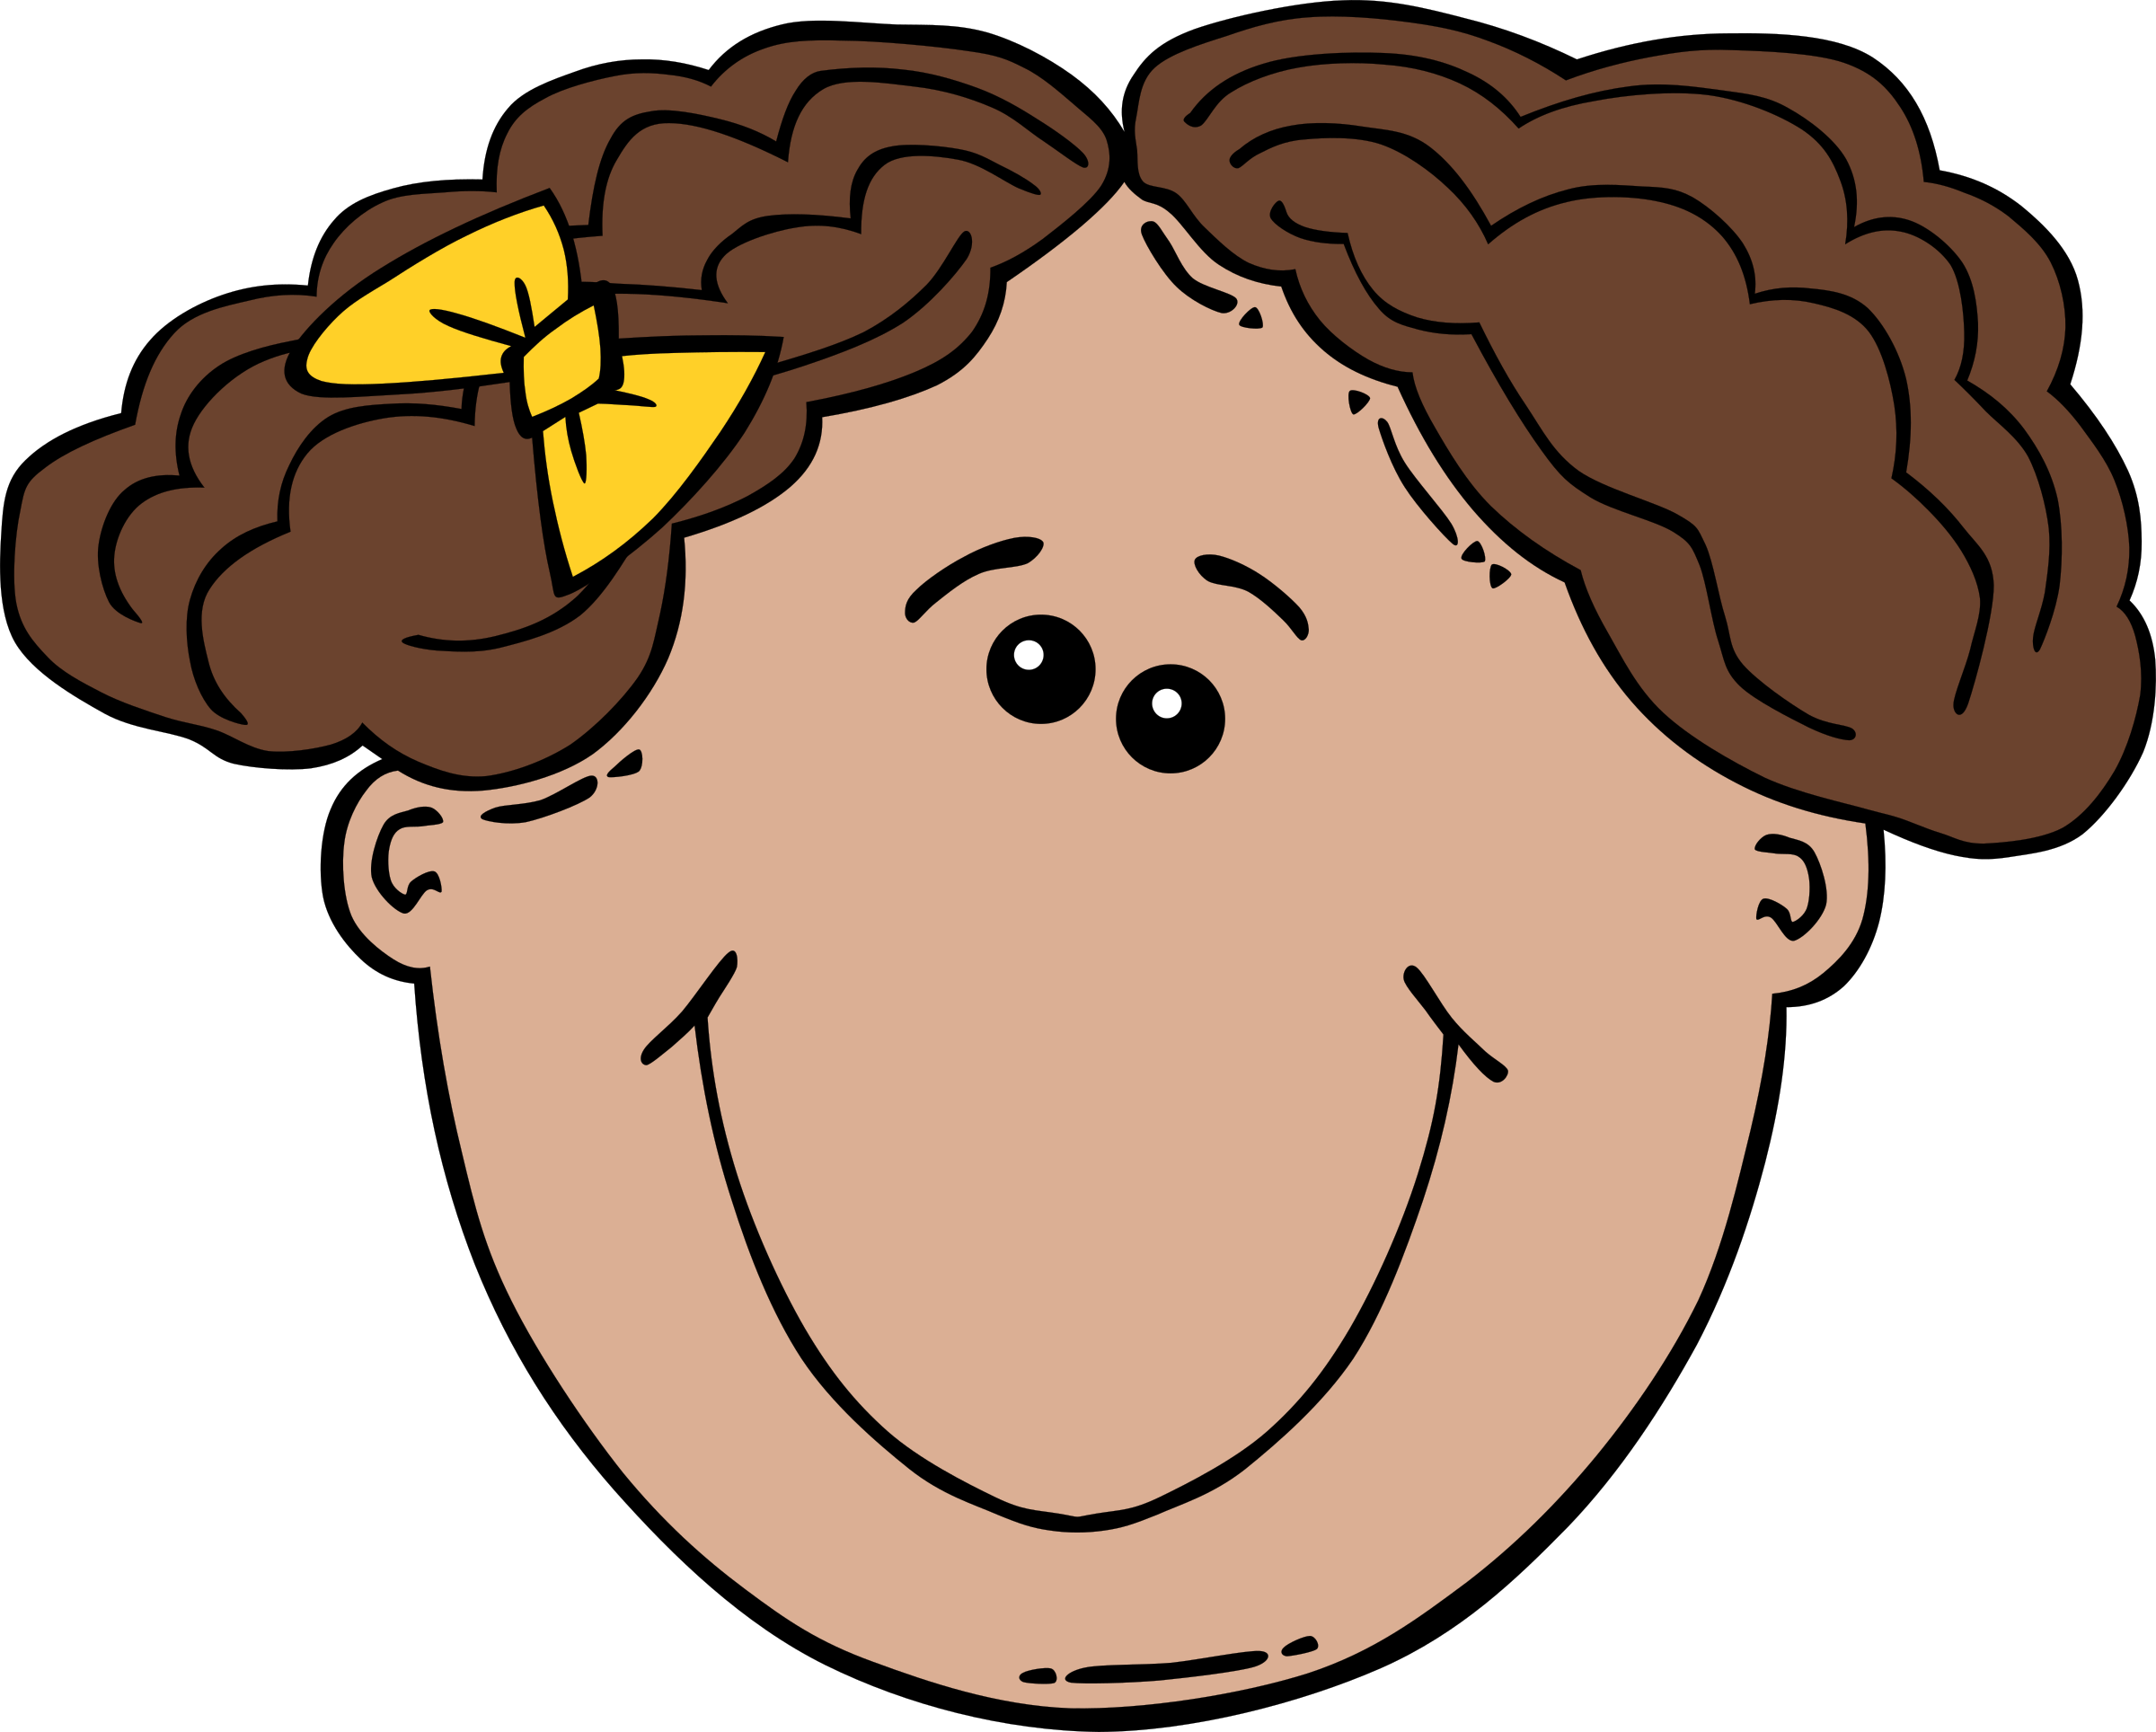 Comic faces clipart library Funny Cartoon Faces Images | Free download best Funny Cartoon Faces ... library